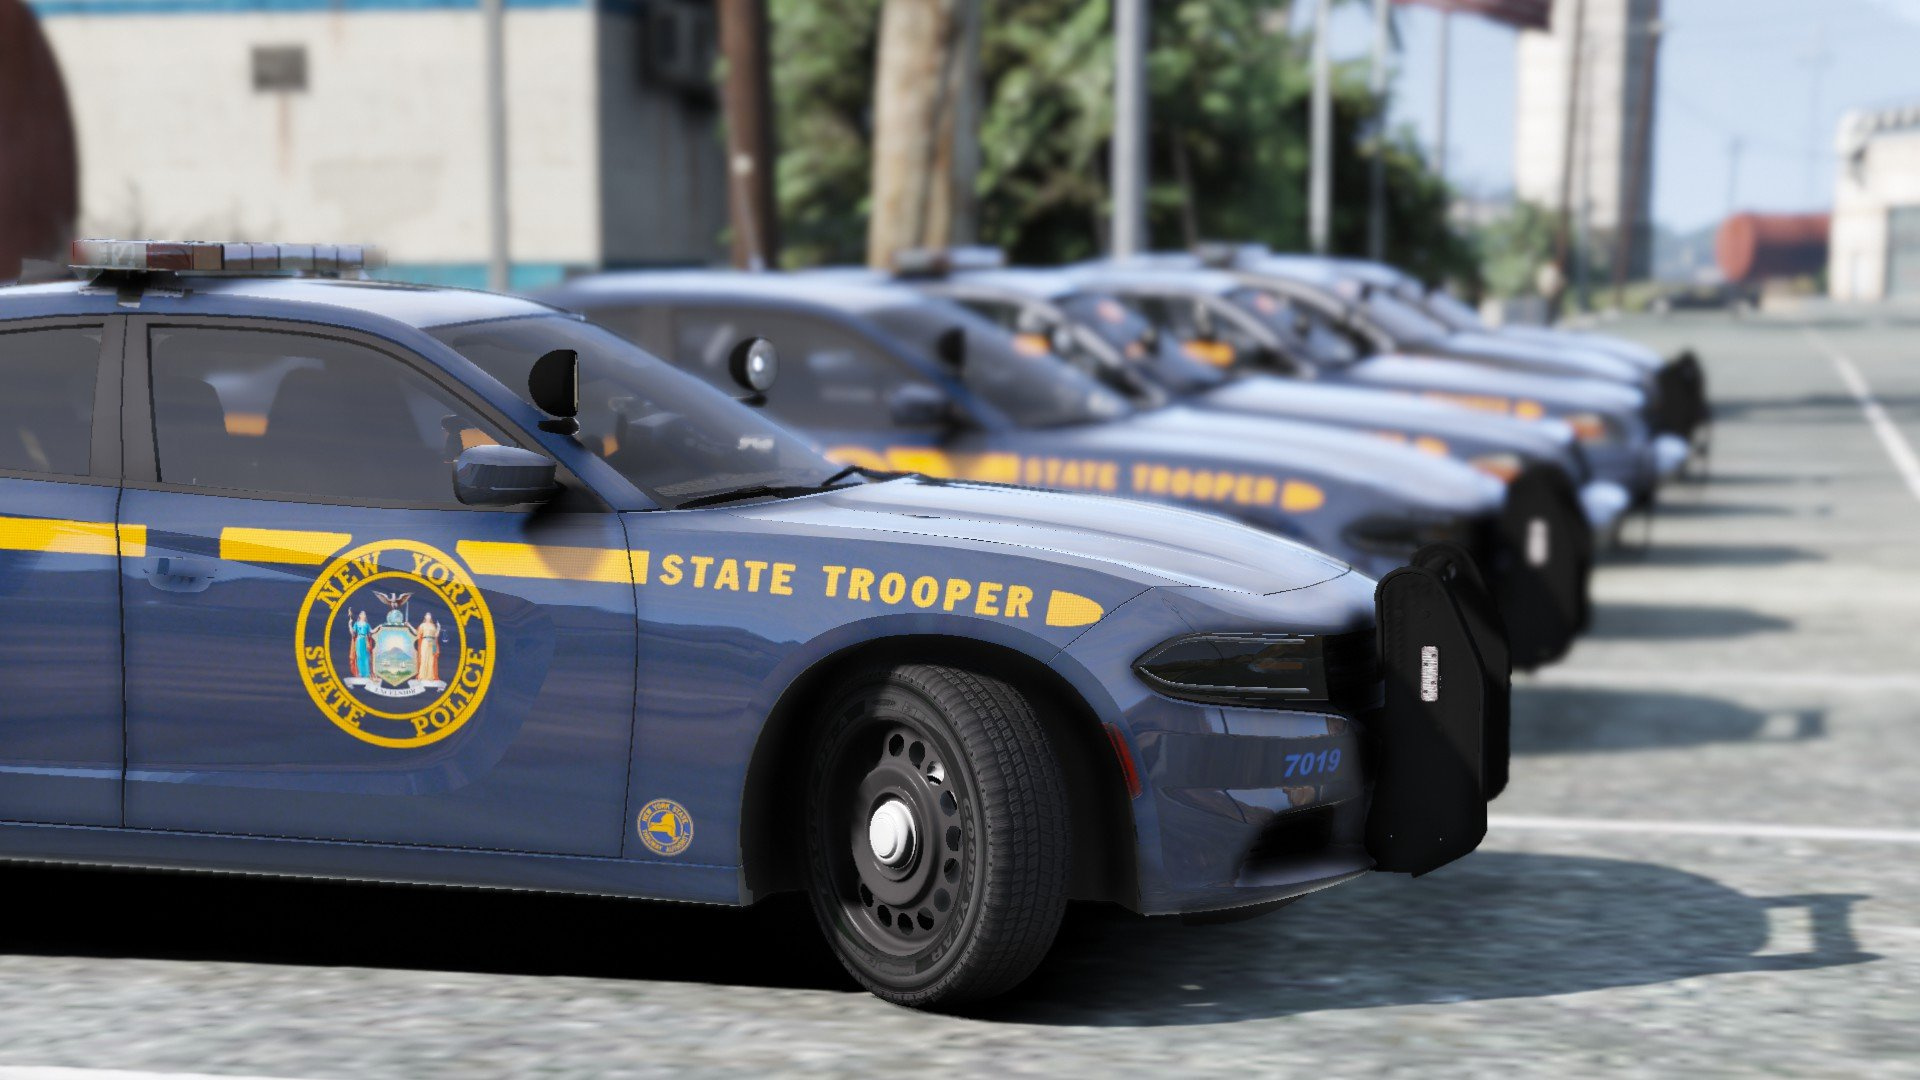 Release] New York State Police Mega Pack Addon (40 REALISTIC CARS